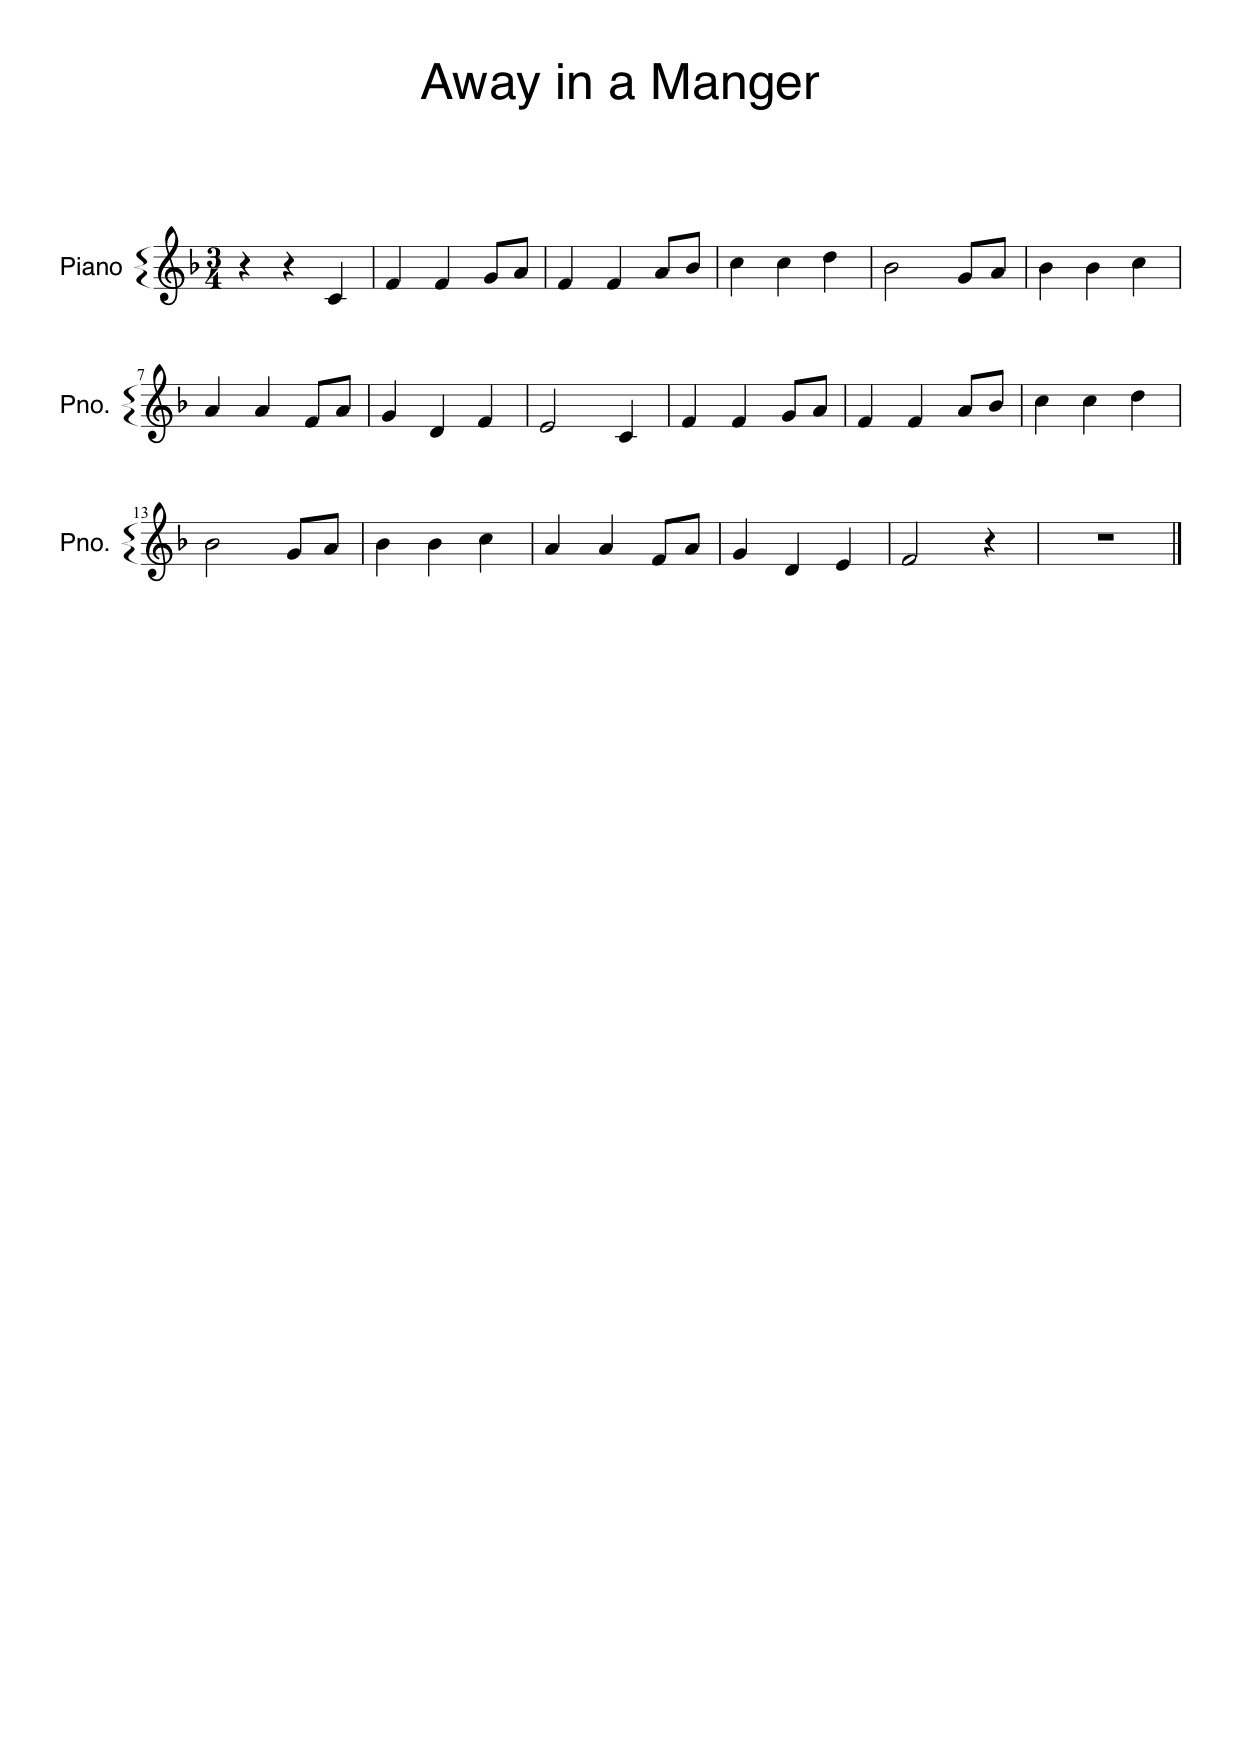 Away in a Manger melody score